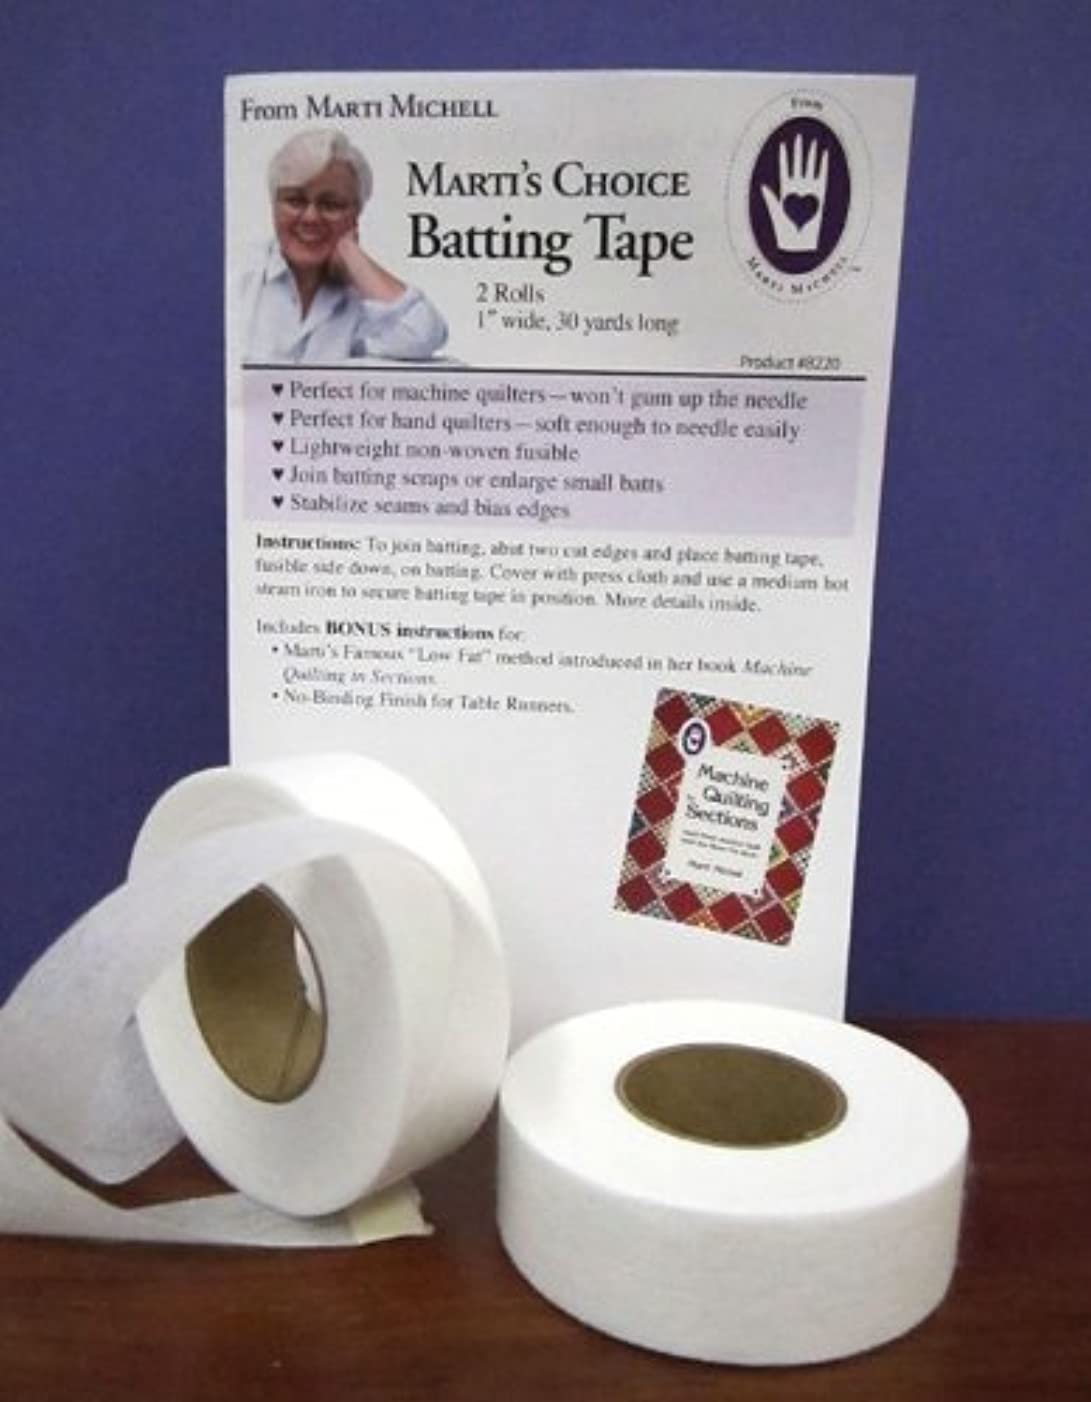 Marti Michell - Marti's Choice Non-Woven Fusible Batting Tape - 1 inch wide by 30 yards long - Two Rolls Per Package